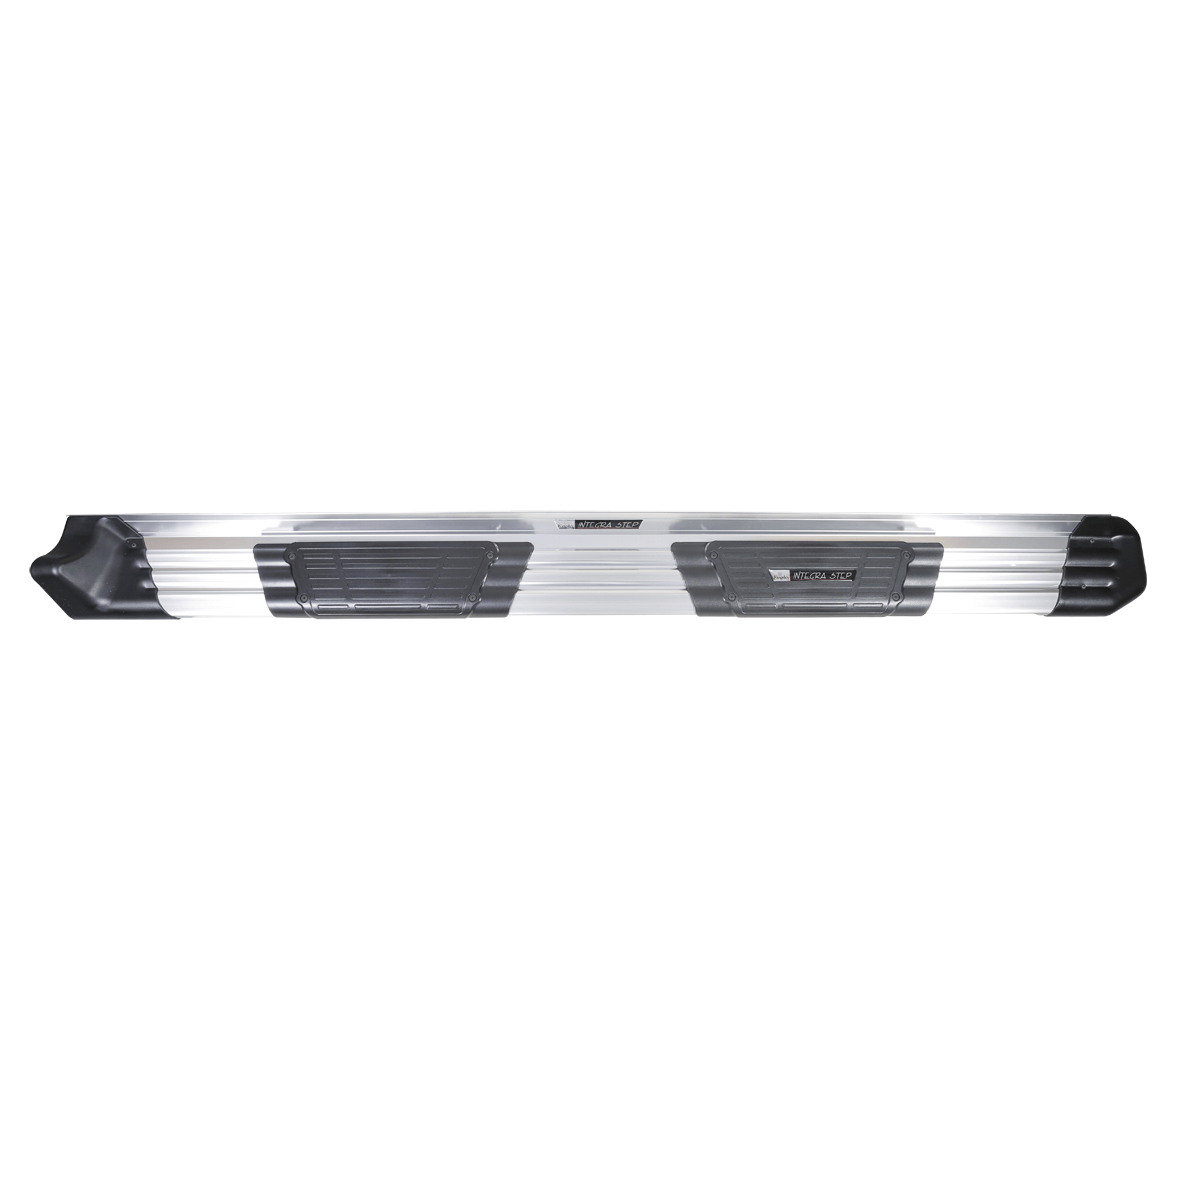 INTEGRA SIDE STEPS Suitable For Ford Everest, F250, F350, Ranger